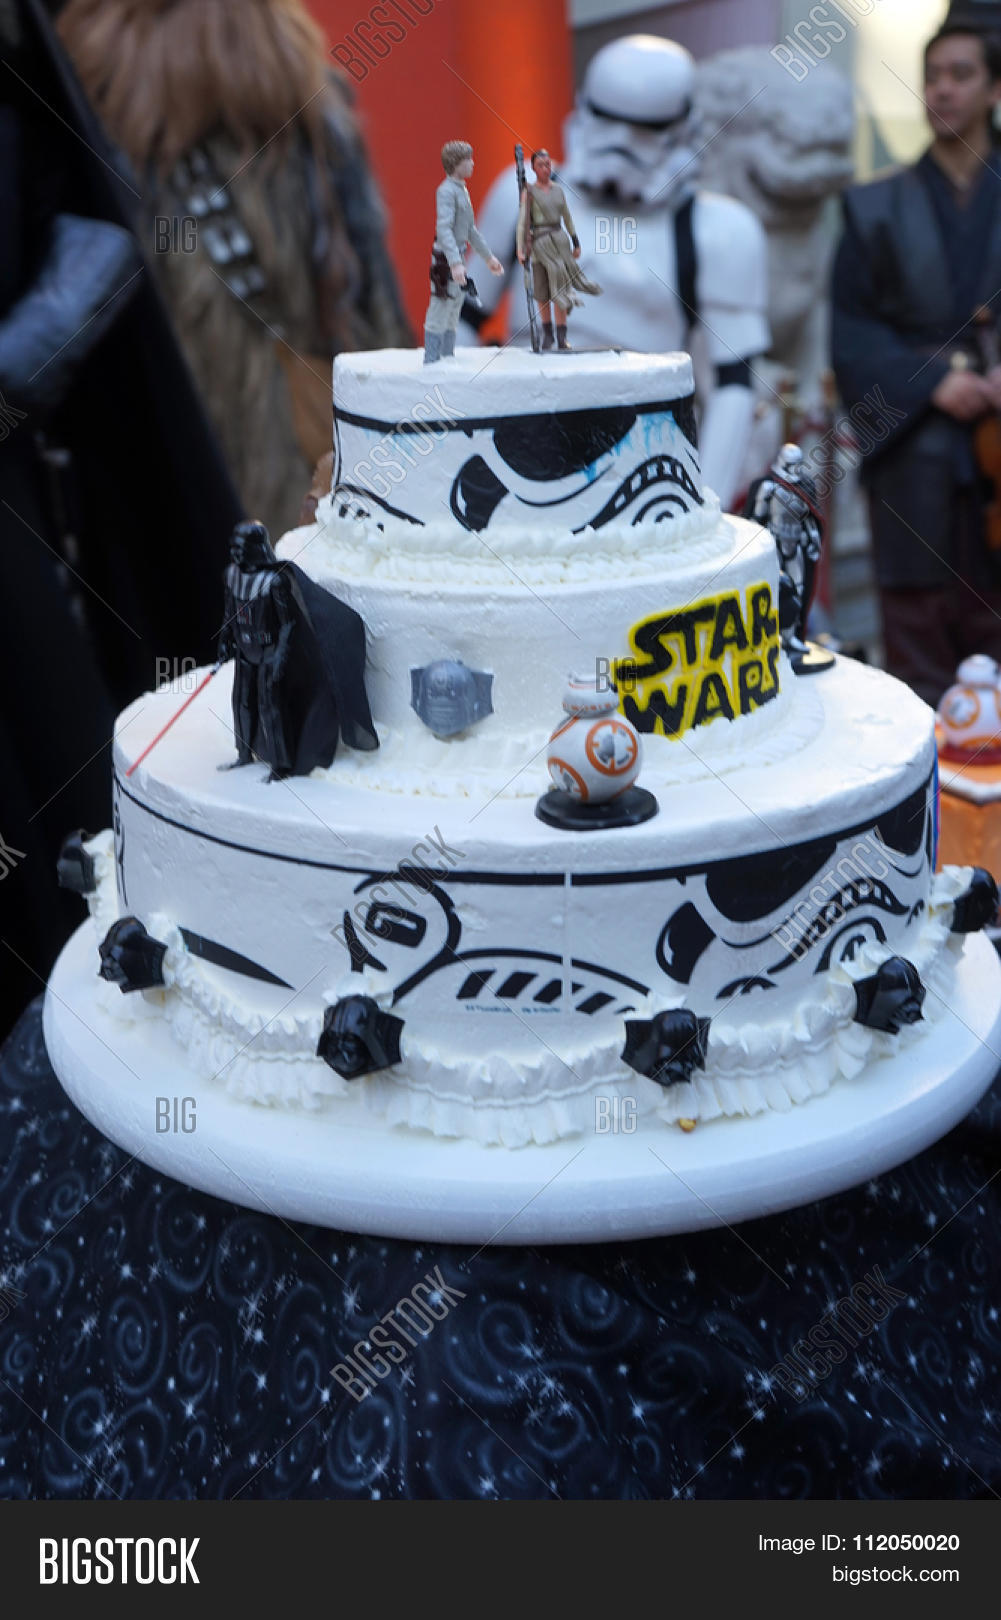 star wars wedding cake los angeles dec 17 image amp photo free trial bigstock 7677